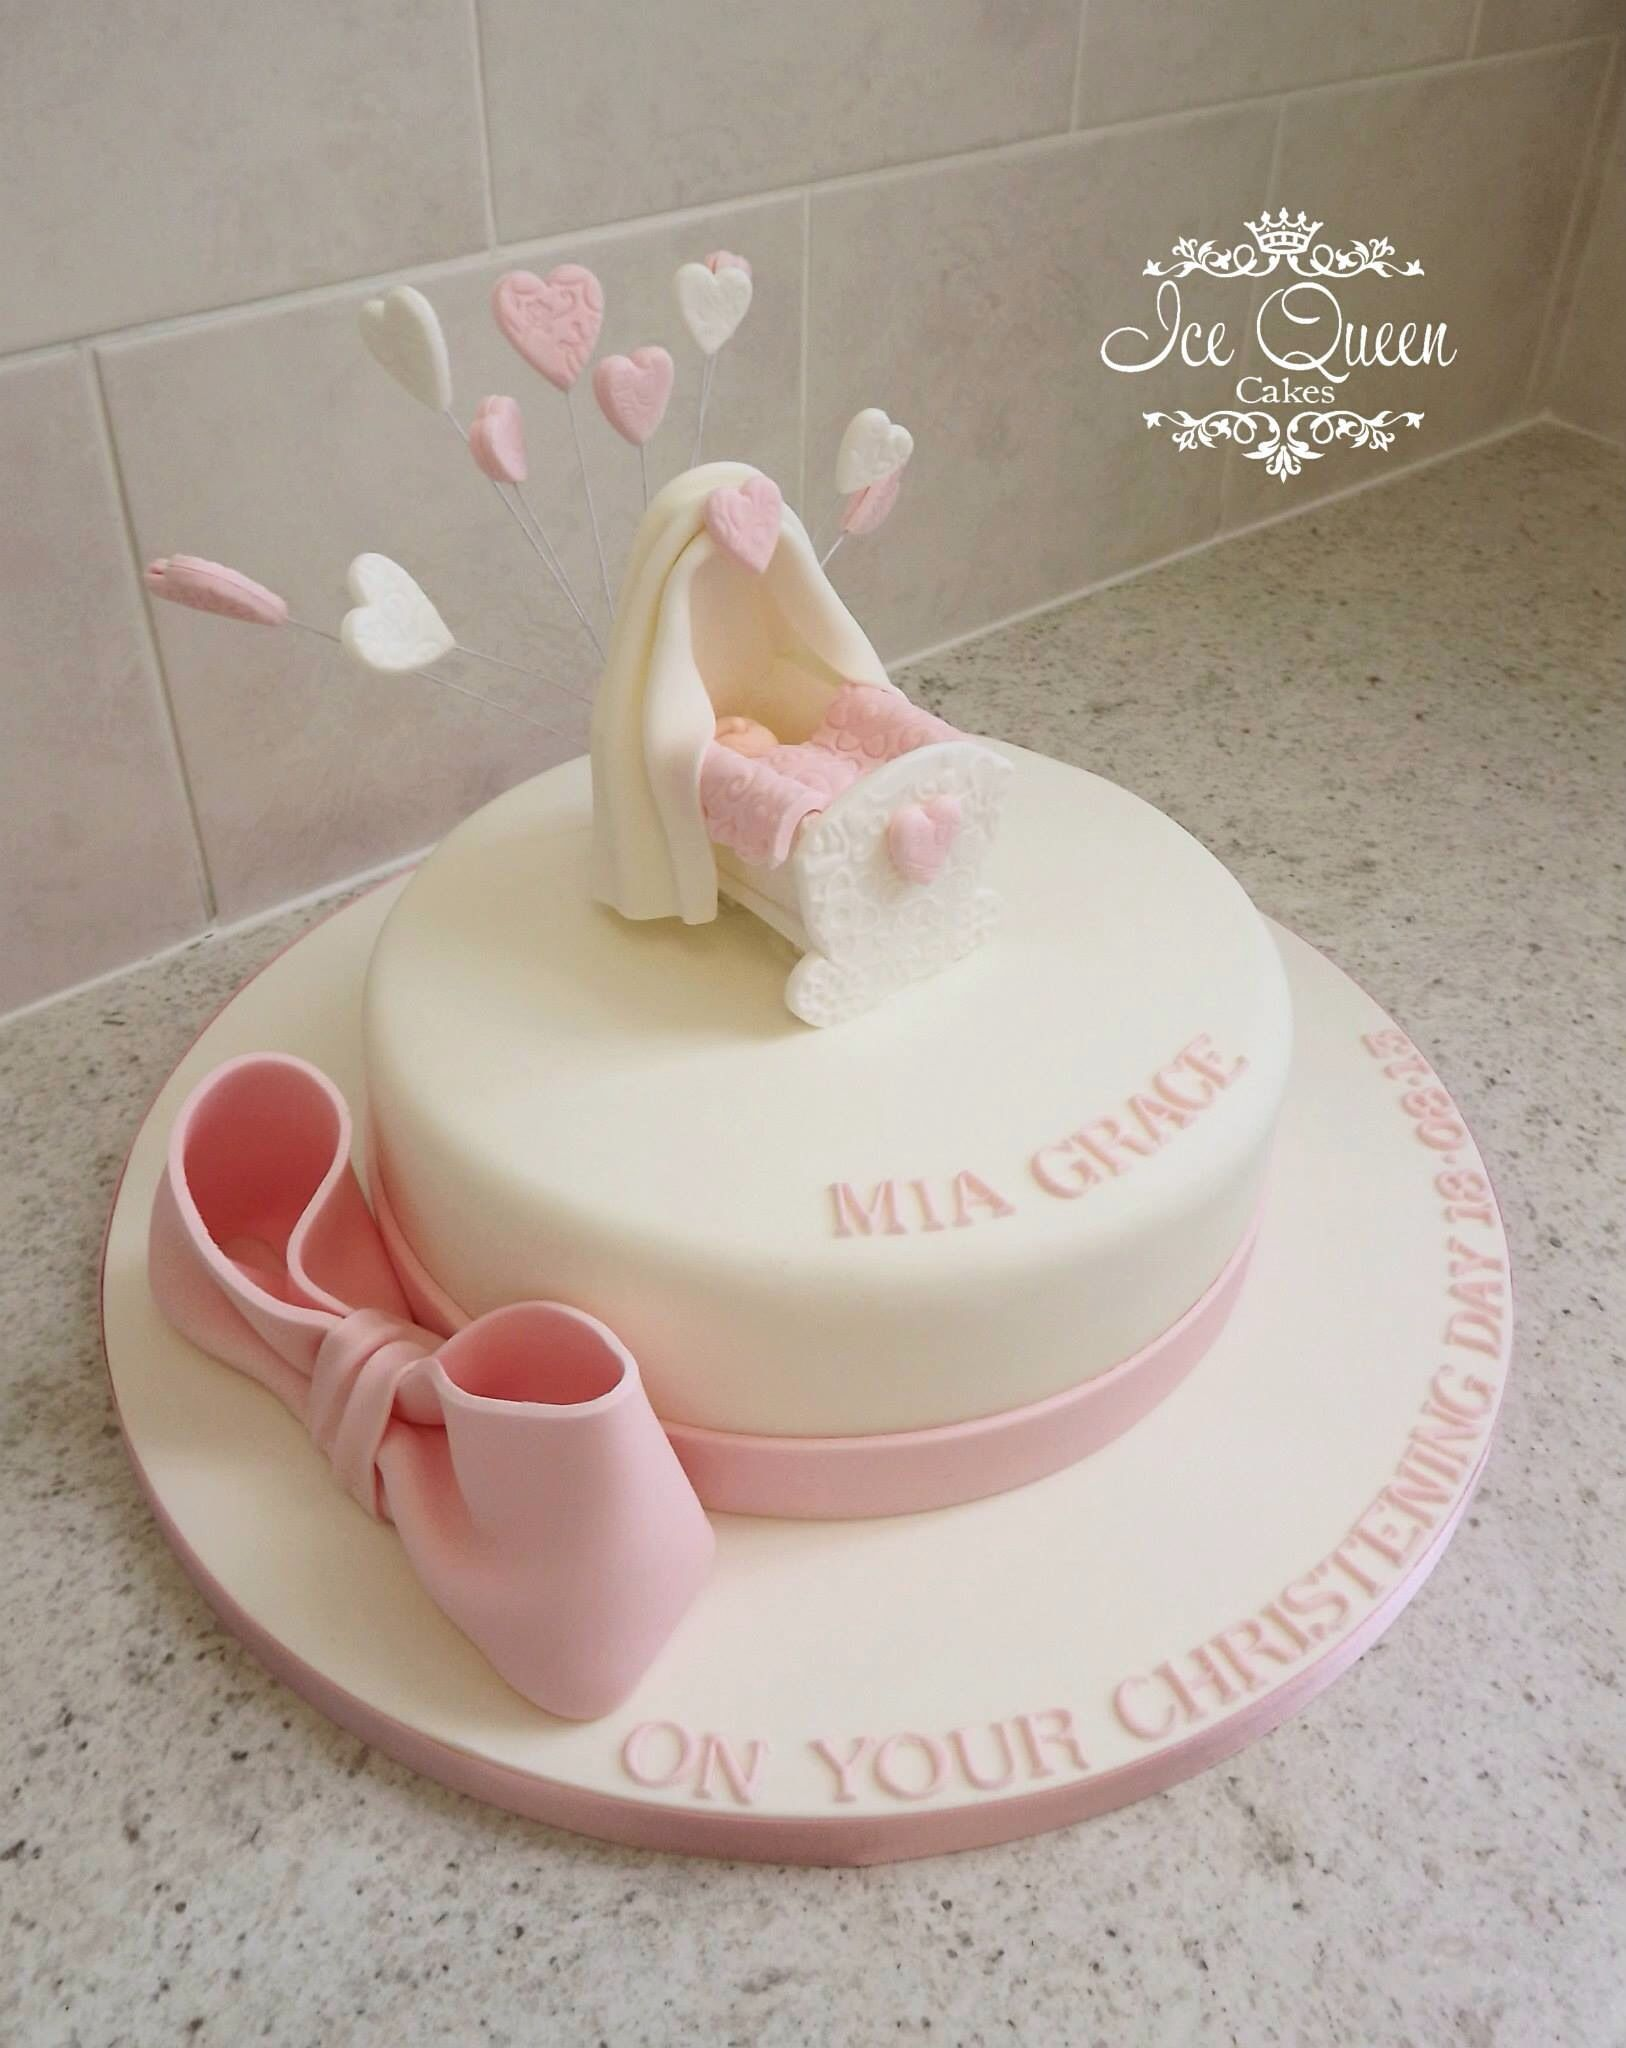 Baby cribs liverpool - Baby Cradle Christening Cake With Pink Bow Ice Queen Cakes Celebration Cakes Liverpool